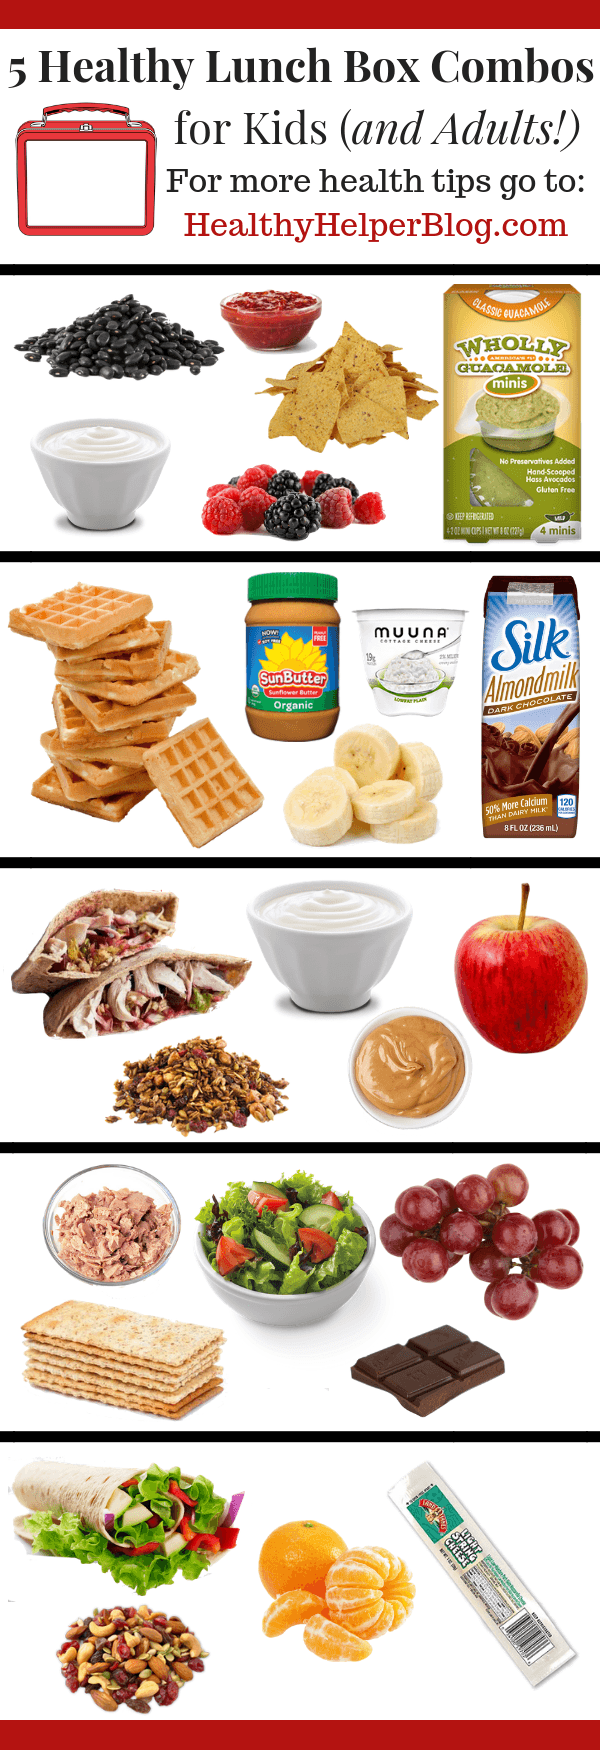 Week 196 - 5 Healthy Lunch Box Combos for Kids and Adults from Healthy Helper Blog